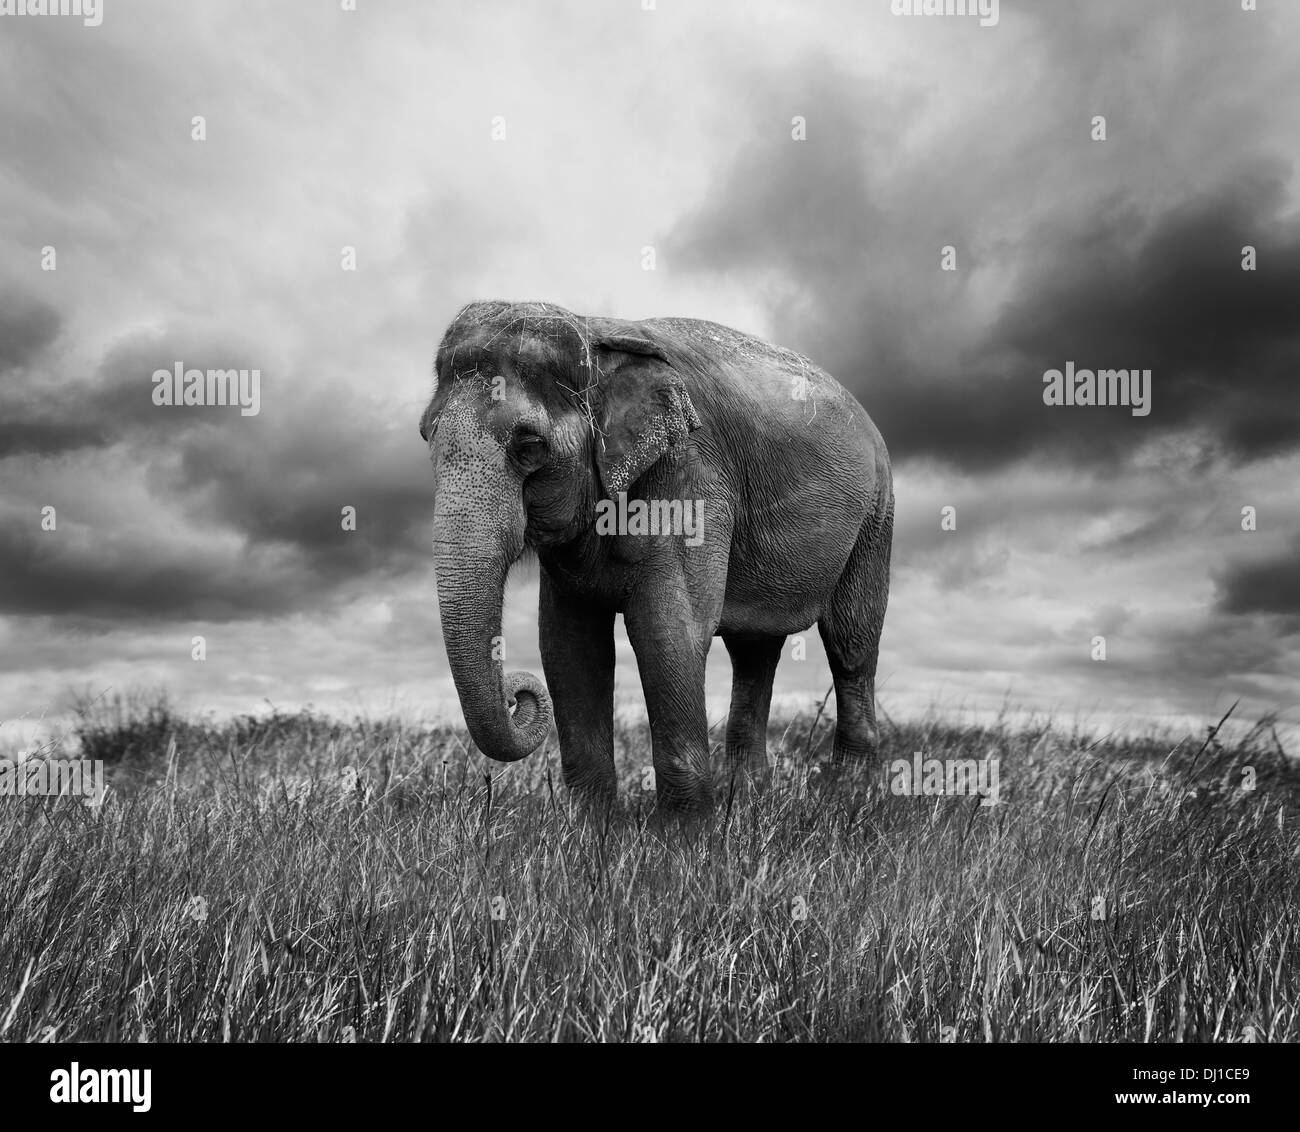 Elephant Walking On The Grass - Stock Image